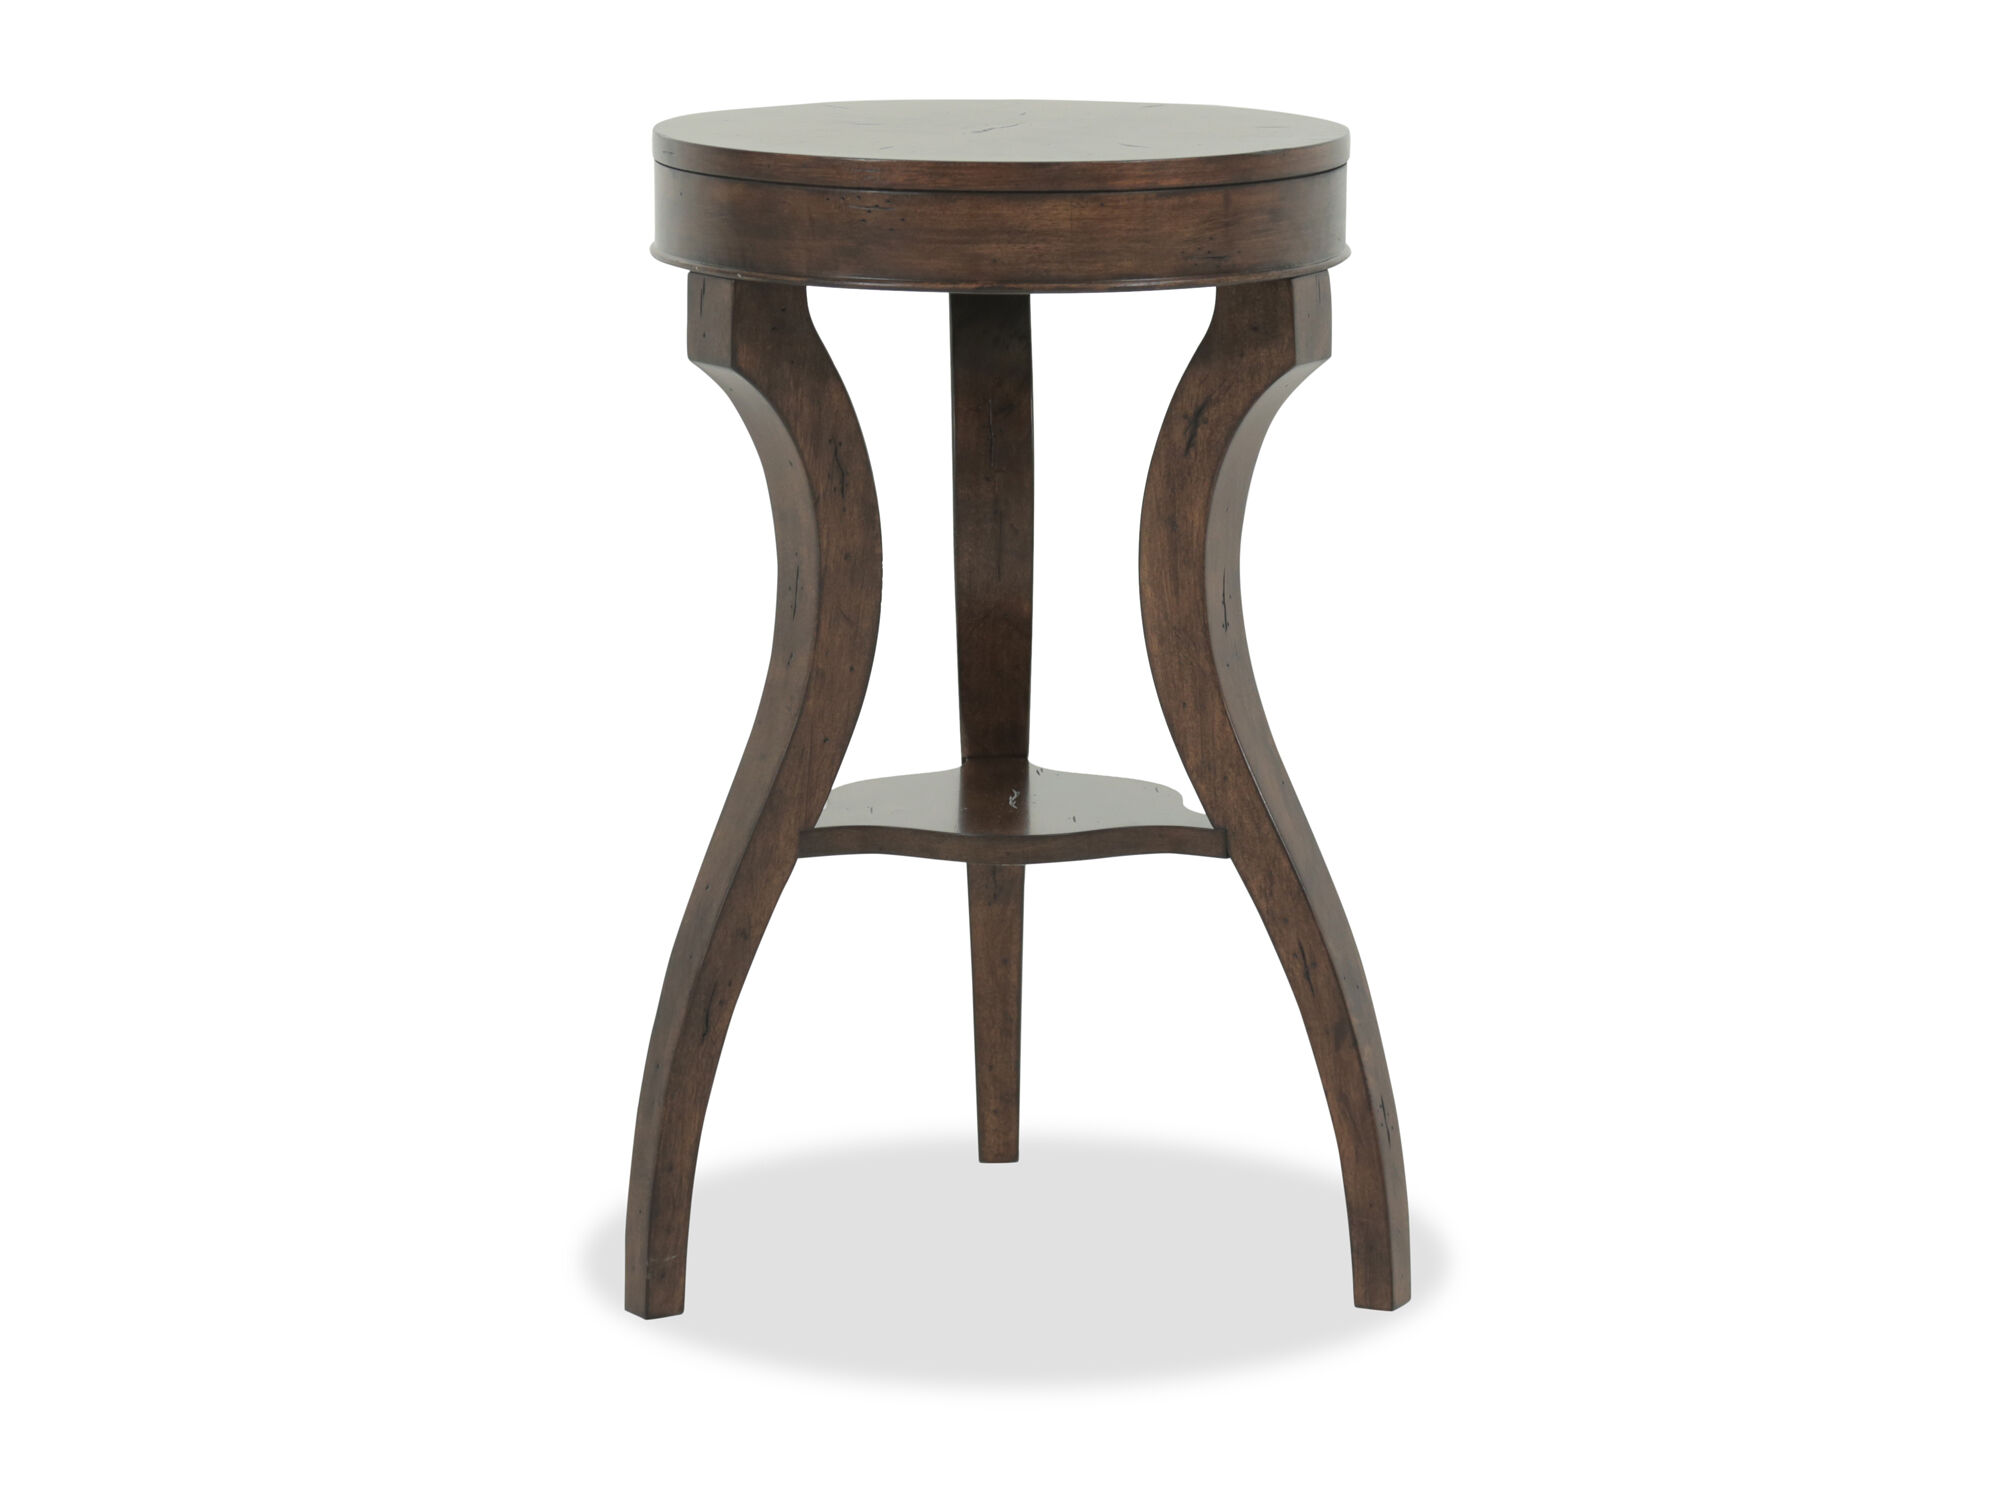 Earthy furniture Unique Round Top Contemporary Accent Table In Earthy Brown Mathis Brothers Furniture Overstock Round Top Contemporary Accent Table In Earthy Brown Mathis